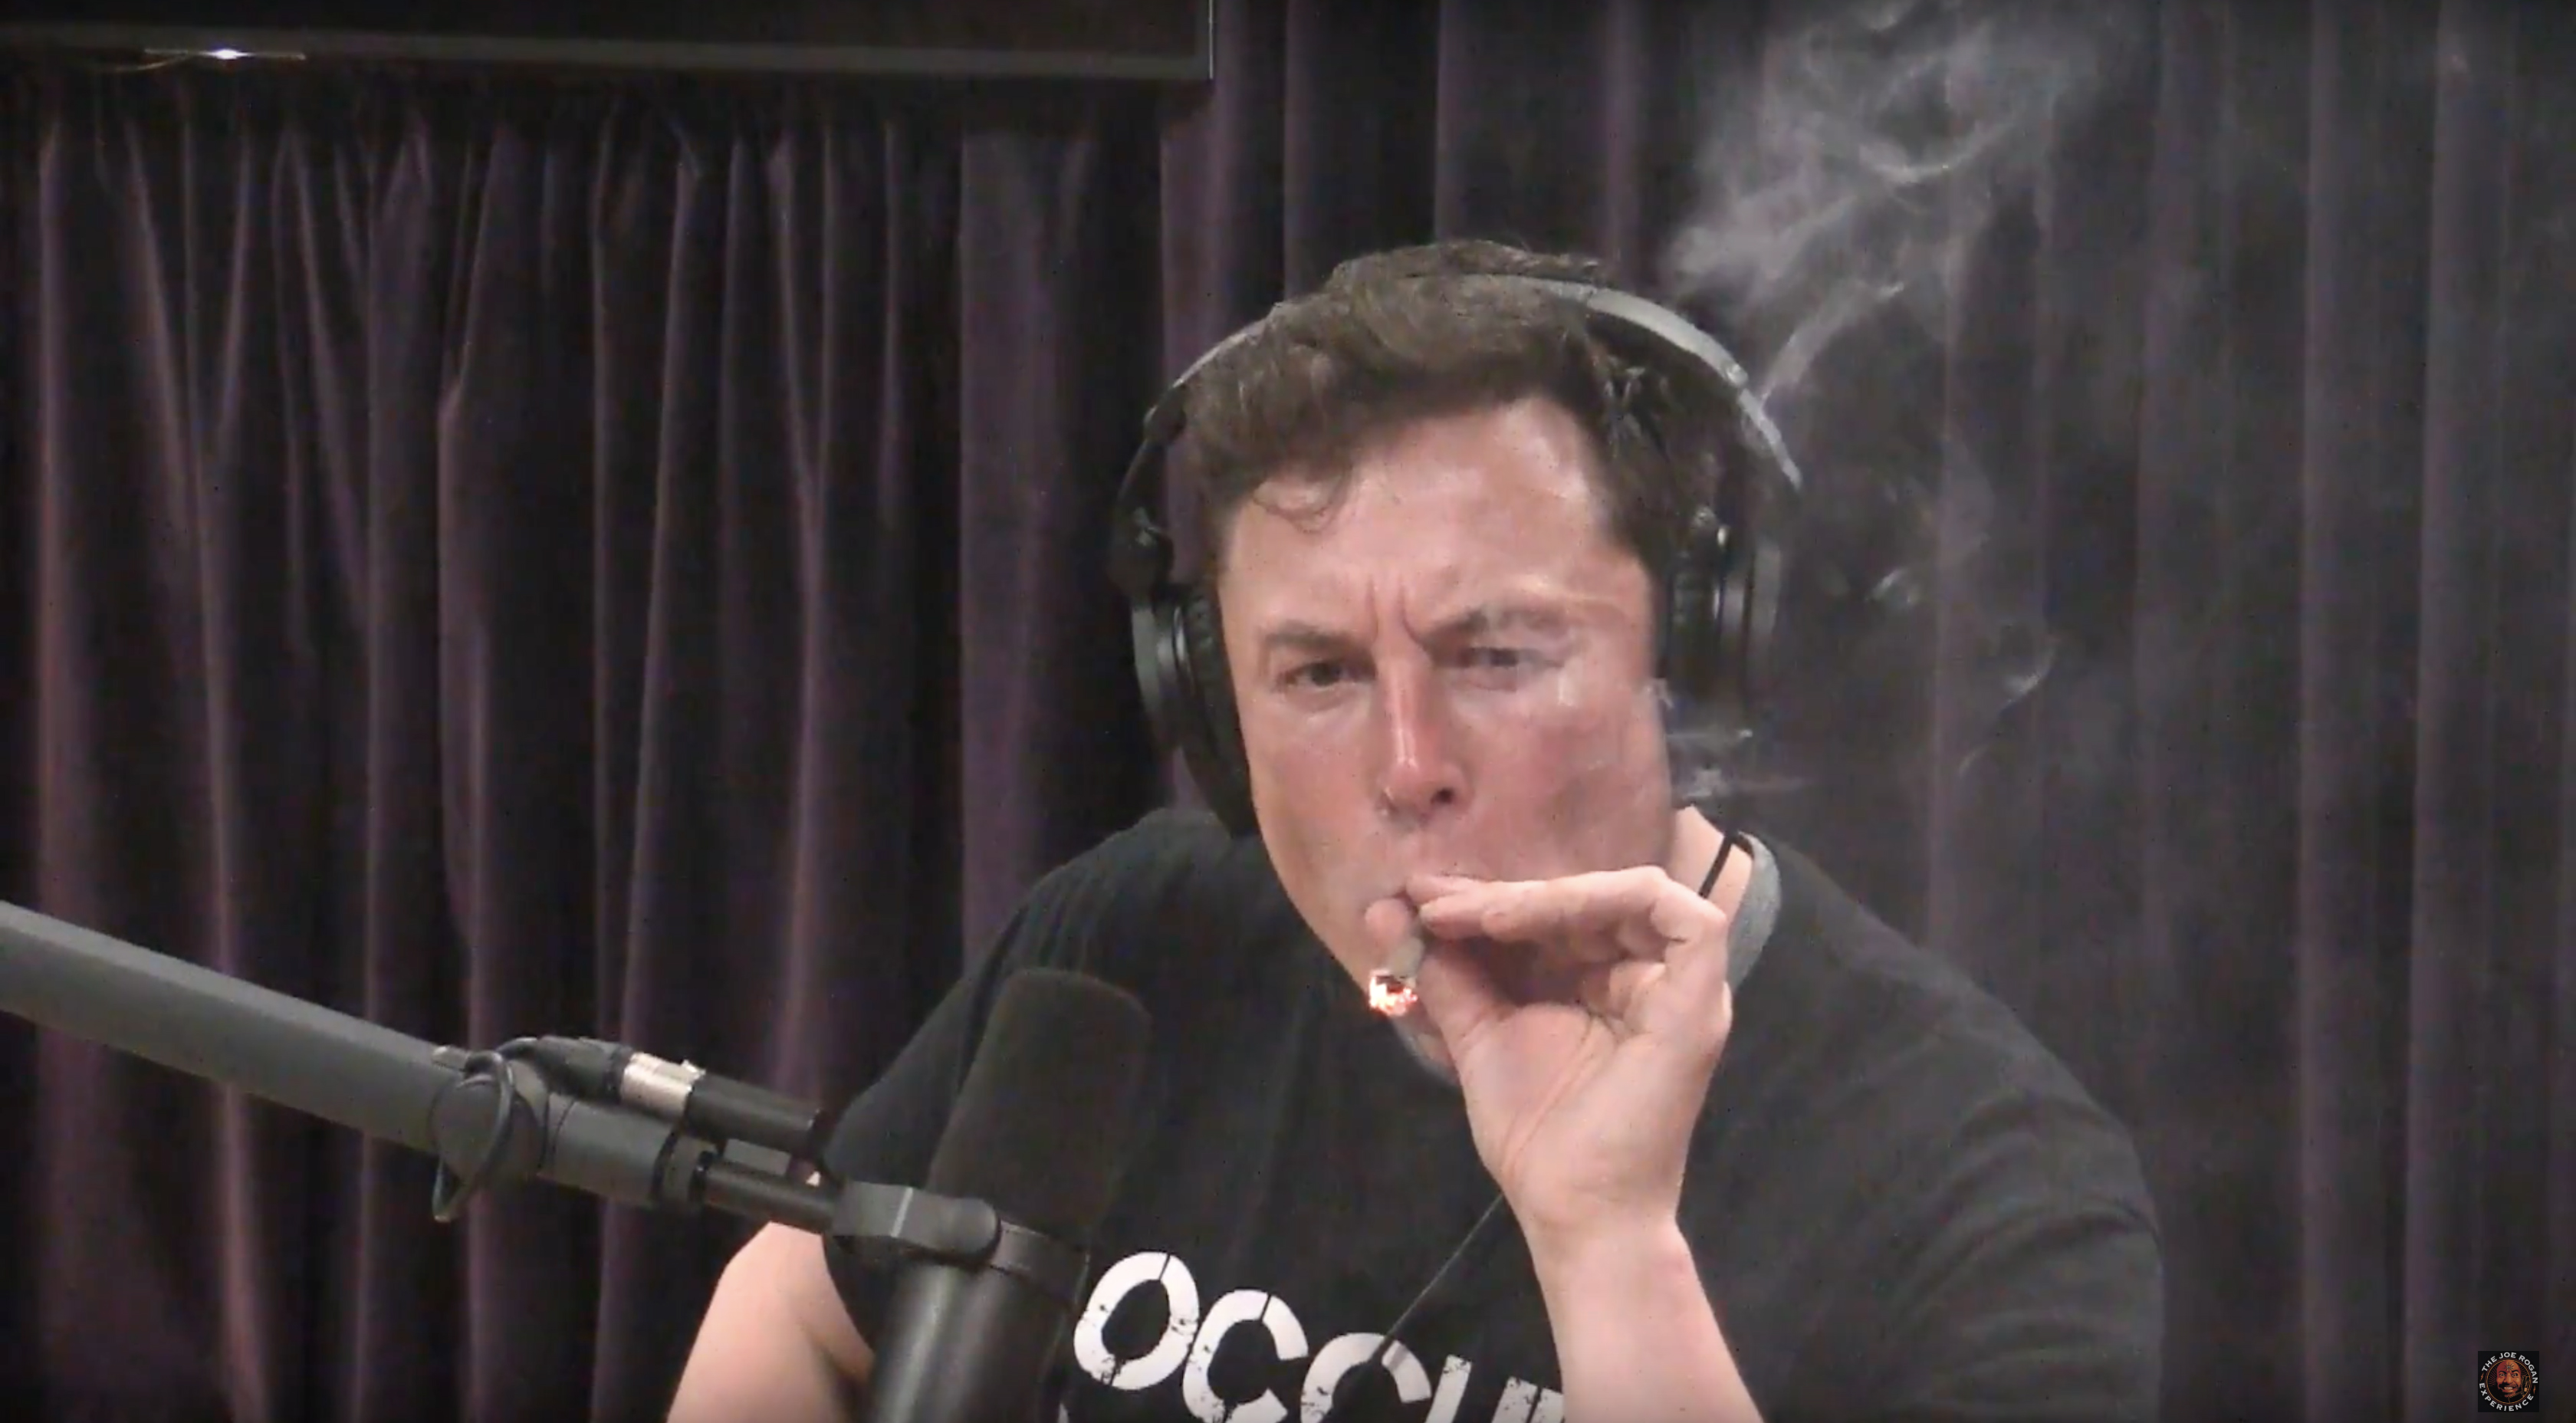 Elon Musk smokes weed during interview - CNN Video